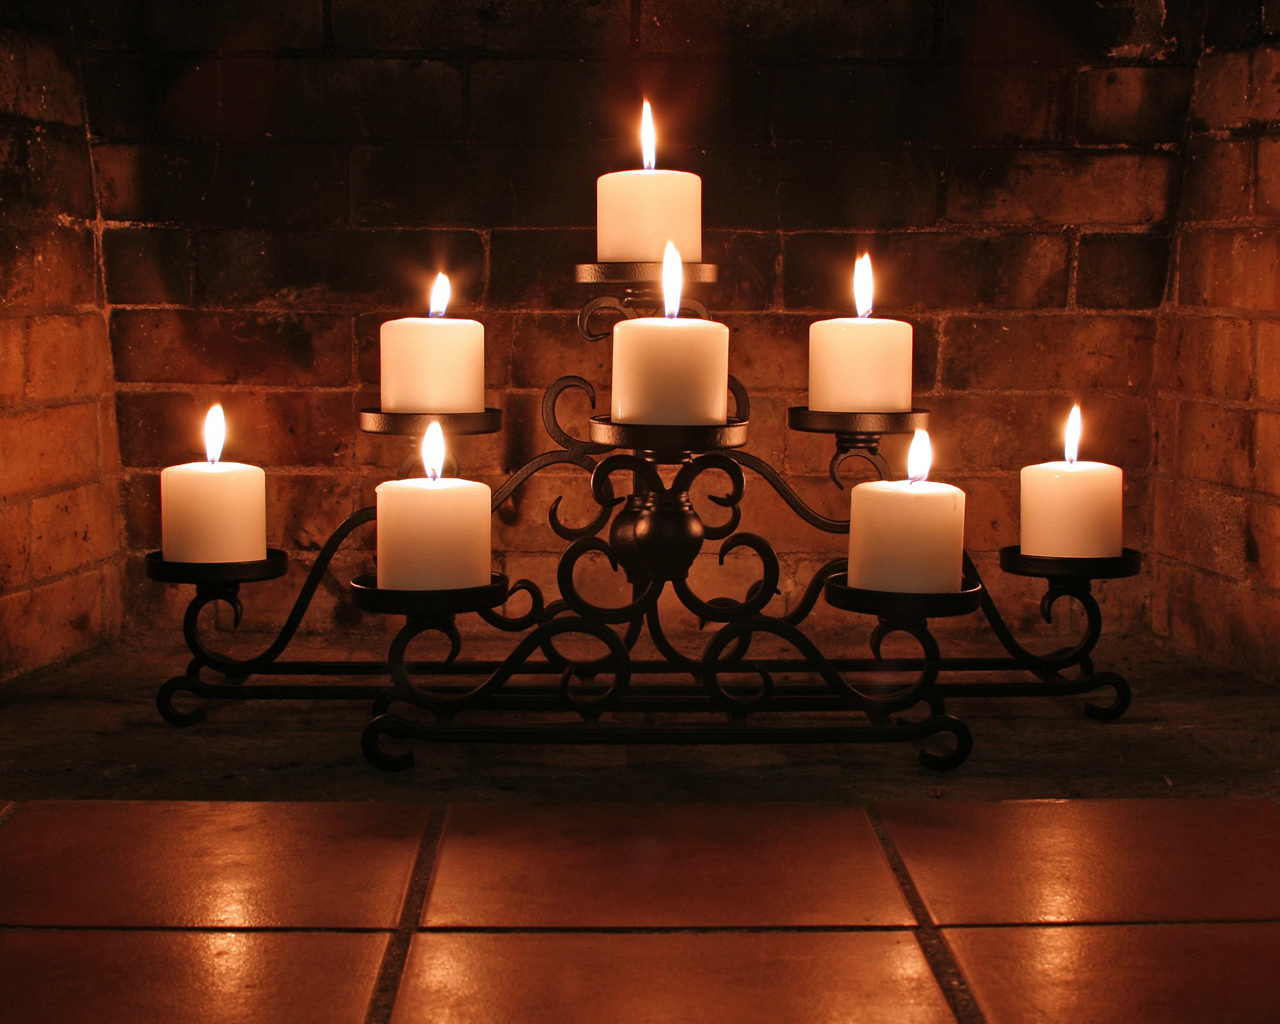 Romantic Candle Light Romantic Candlelight Pictures